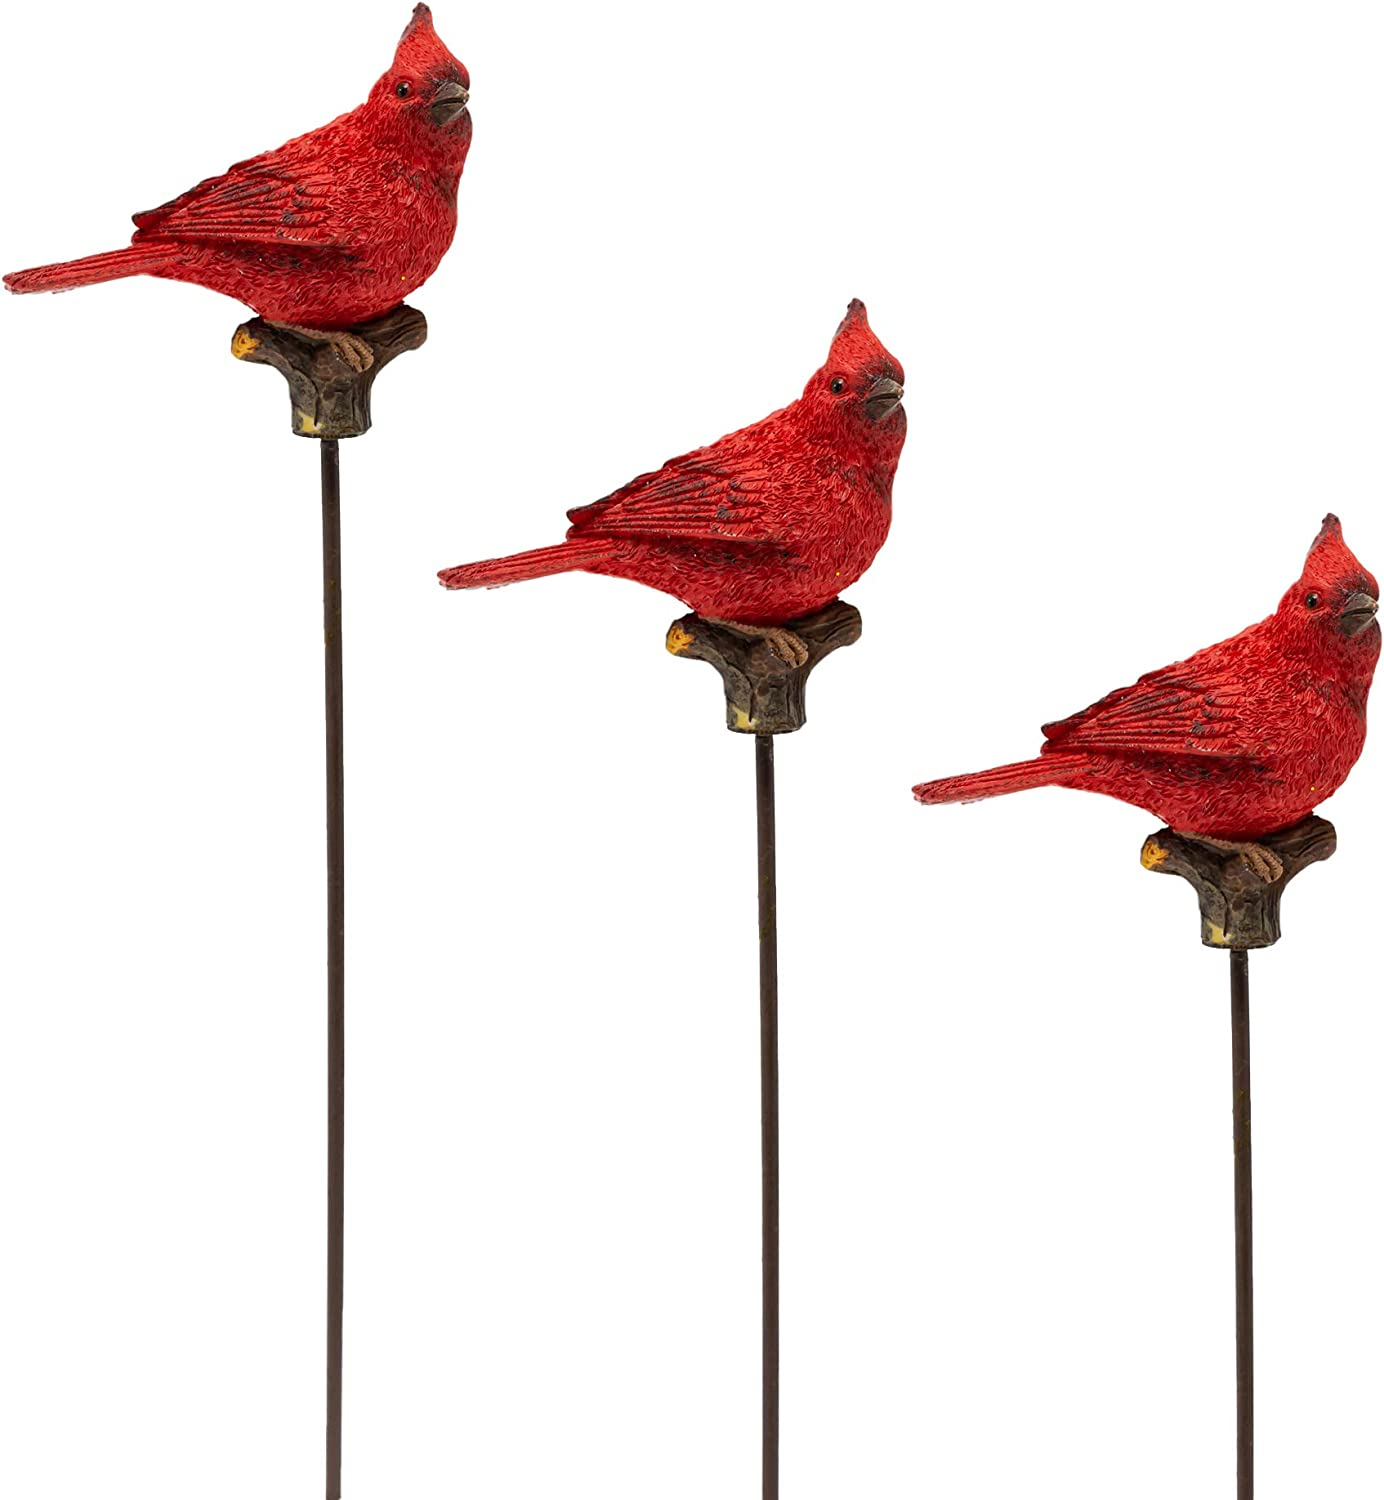 BANBERRY DESIGNS Cardinal Plant Stakes - Set of 3 Decorative Bird Garden Stakes - Red Cardinals on a Branch Garden Décor - Approx. 10 Inches Tall